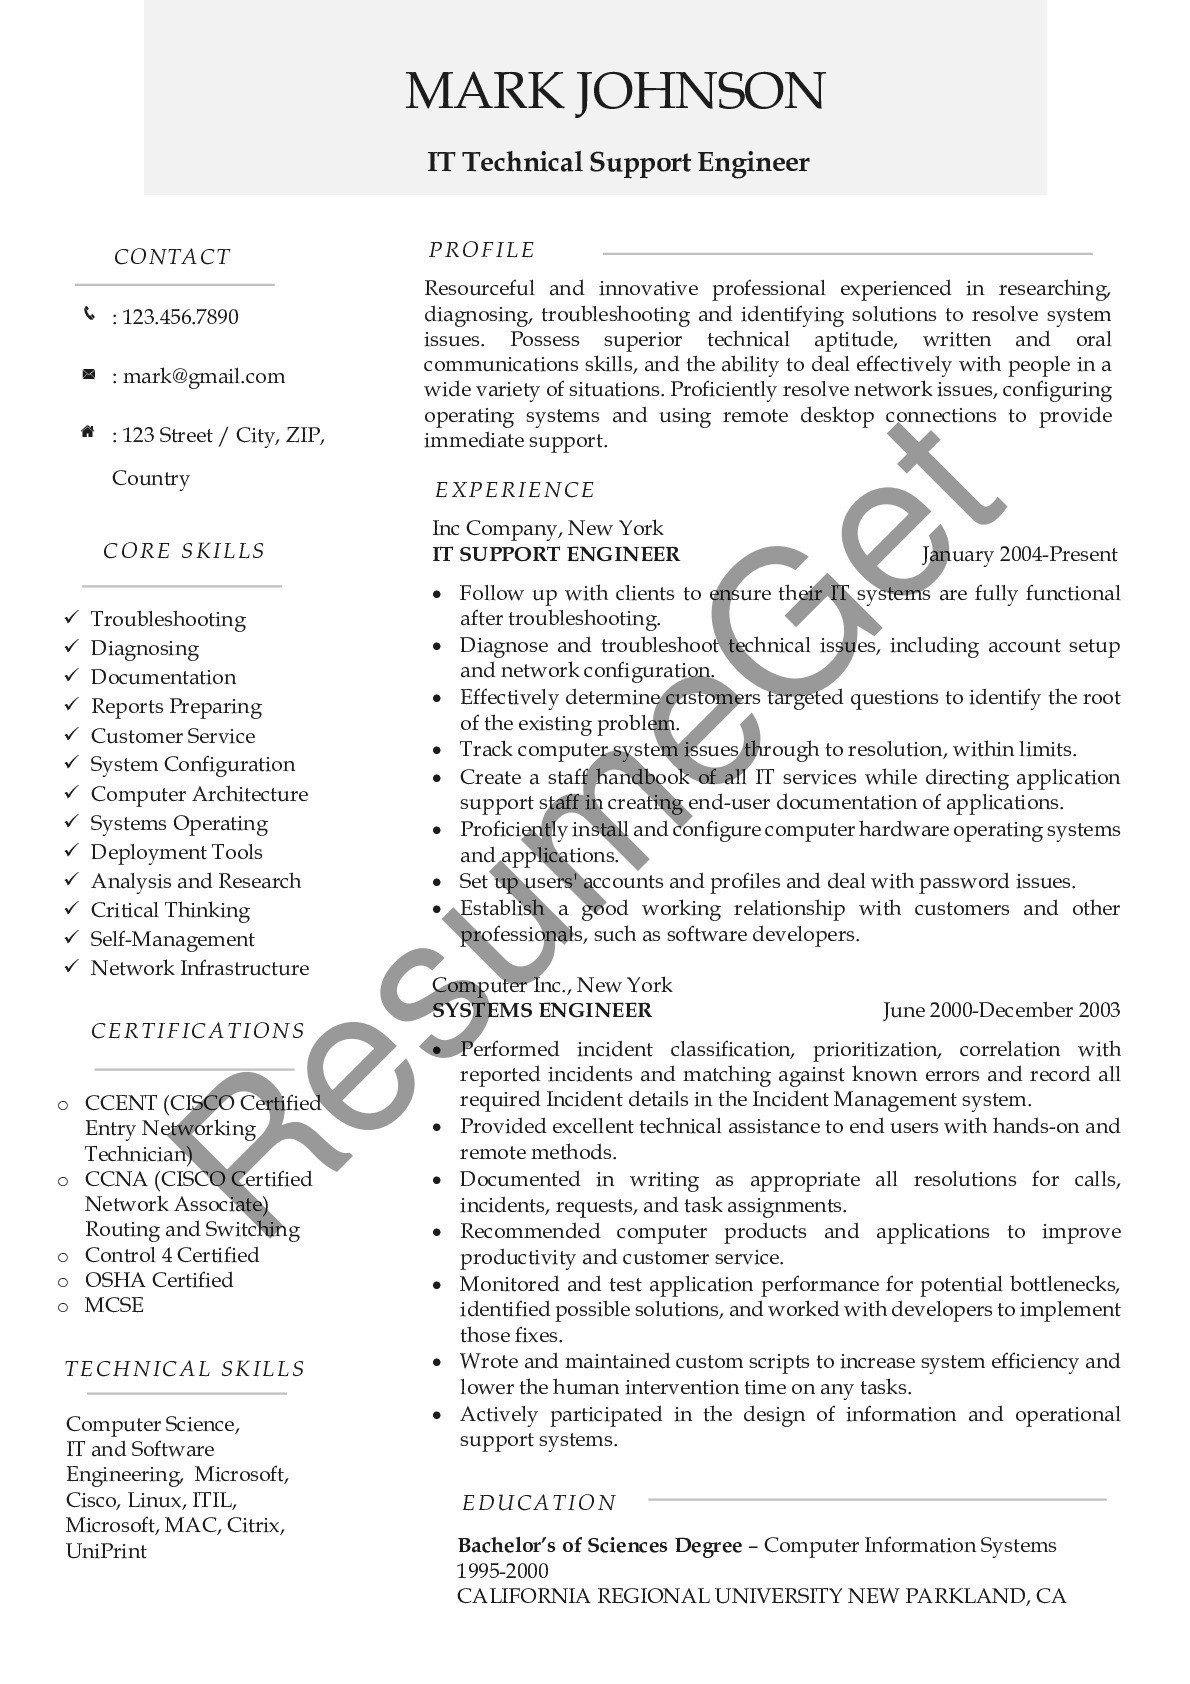 Resume Example for IT Technical Support Engineer